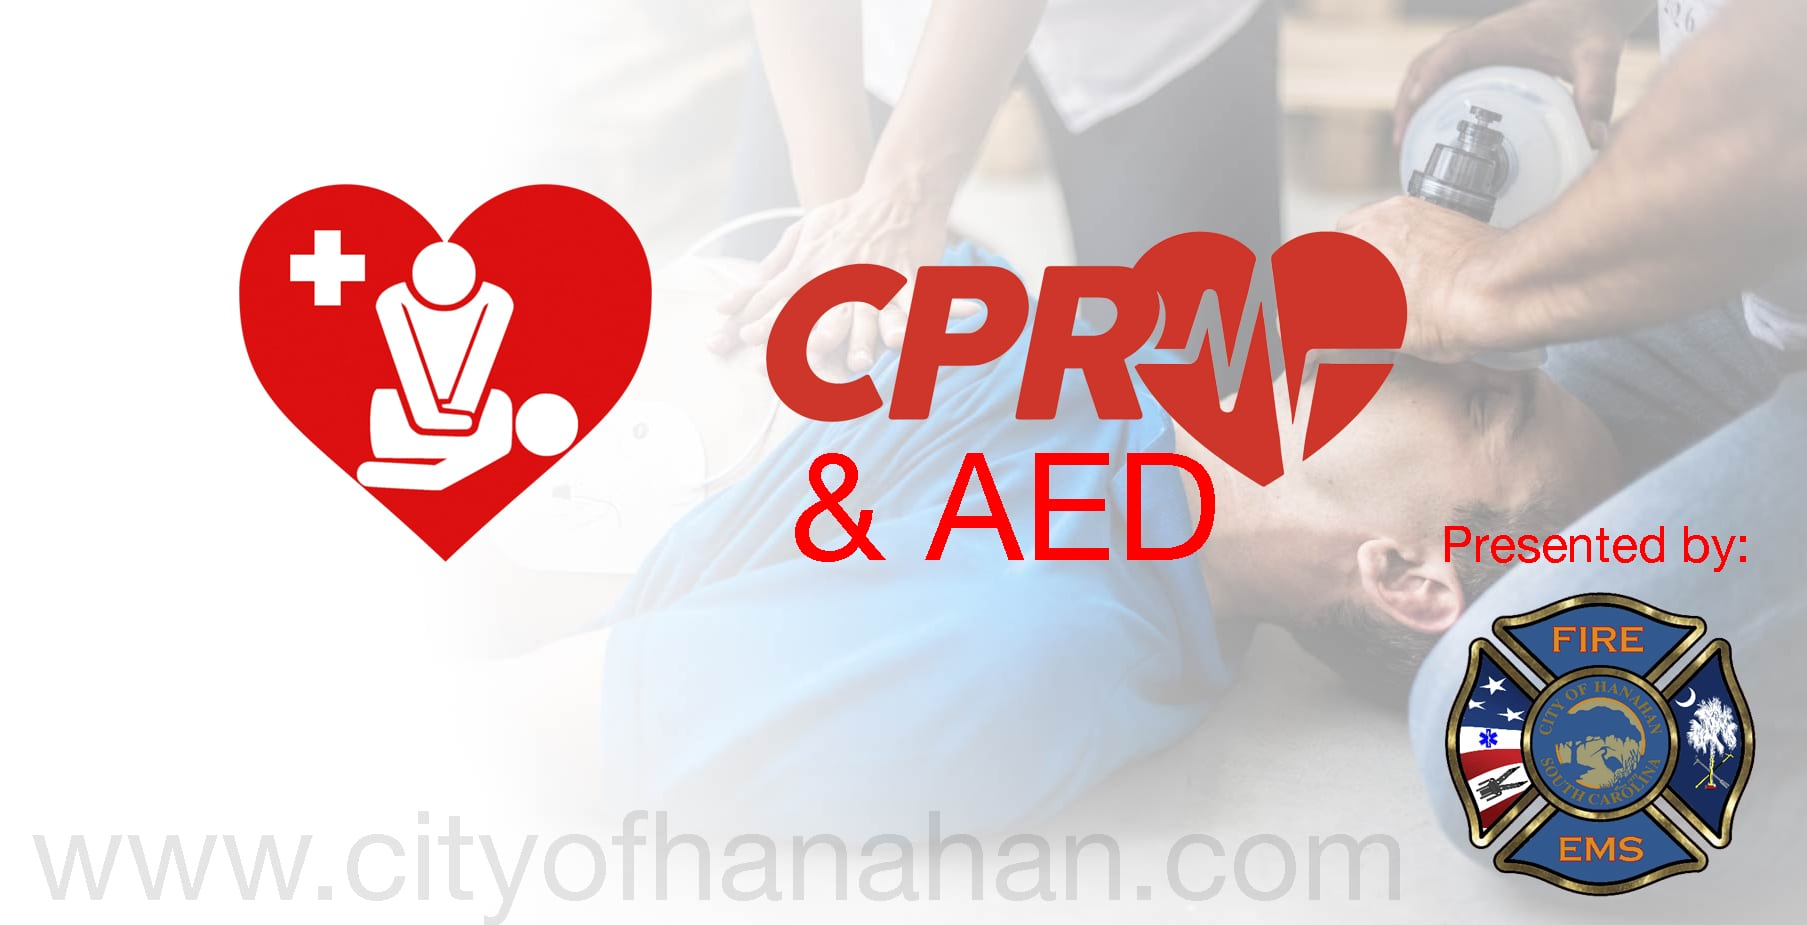 Cpr Aed Certification City Of Hanahan